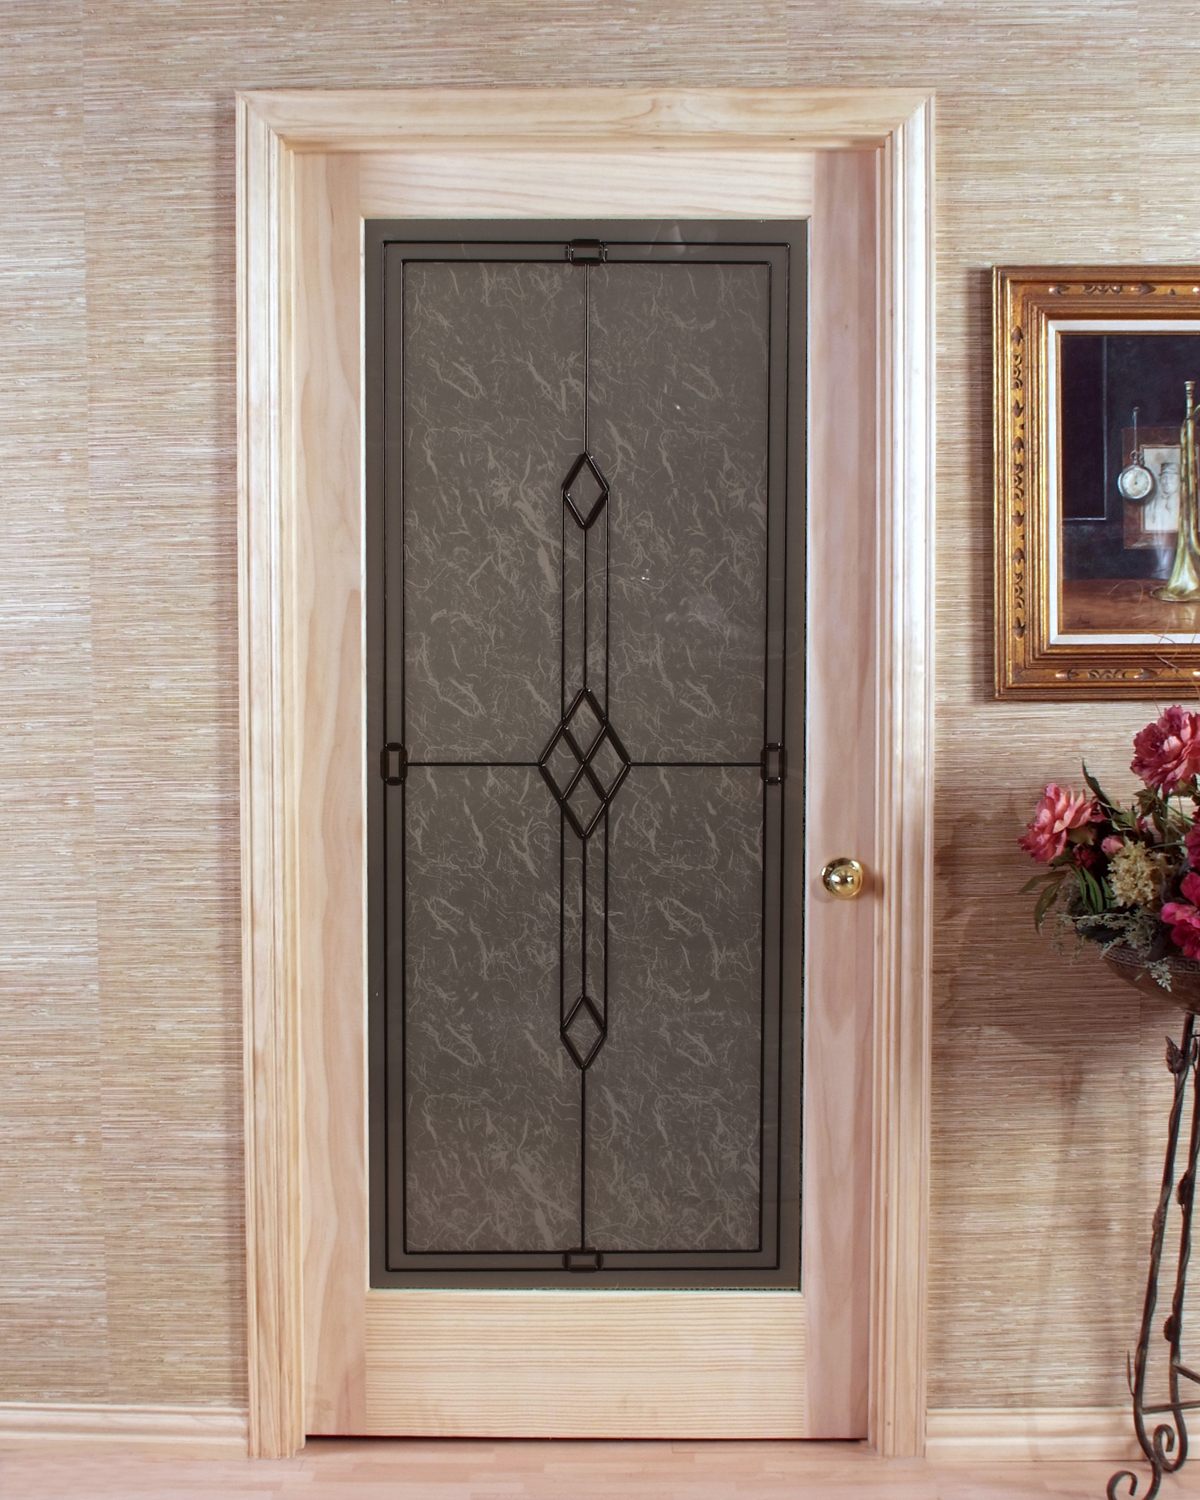 Le Meilleur Geometric Frosted Passage Door With One Piece Tempered Glass Ce Mois Ci